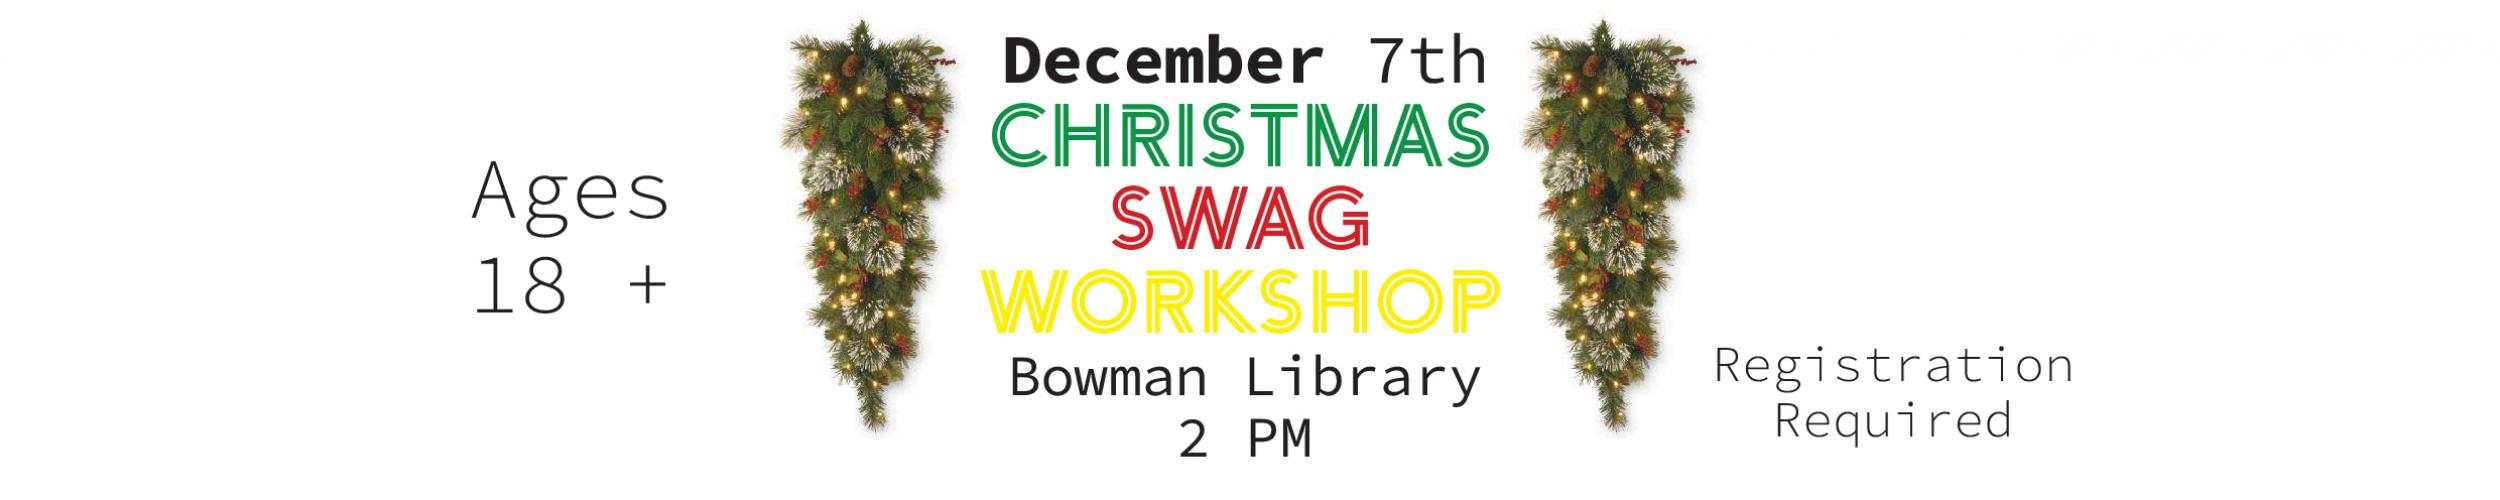 Christmas Swag Adult Workshop December 7th Bowman Library